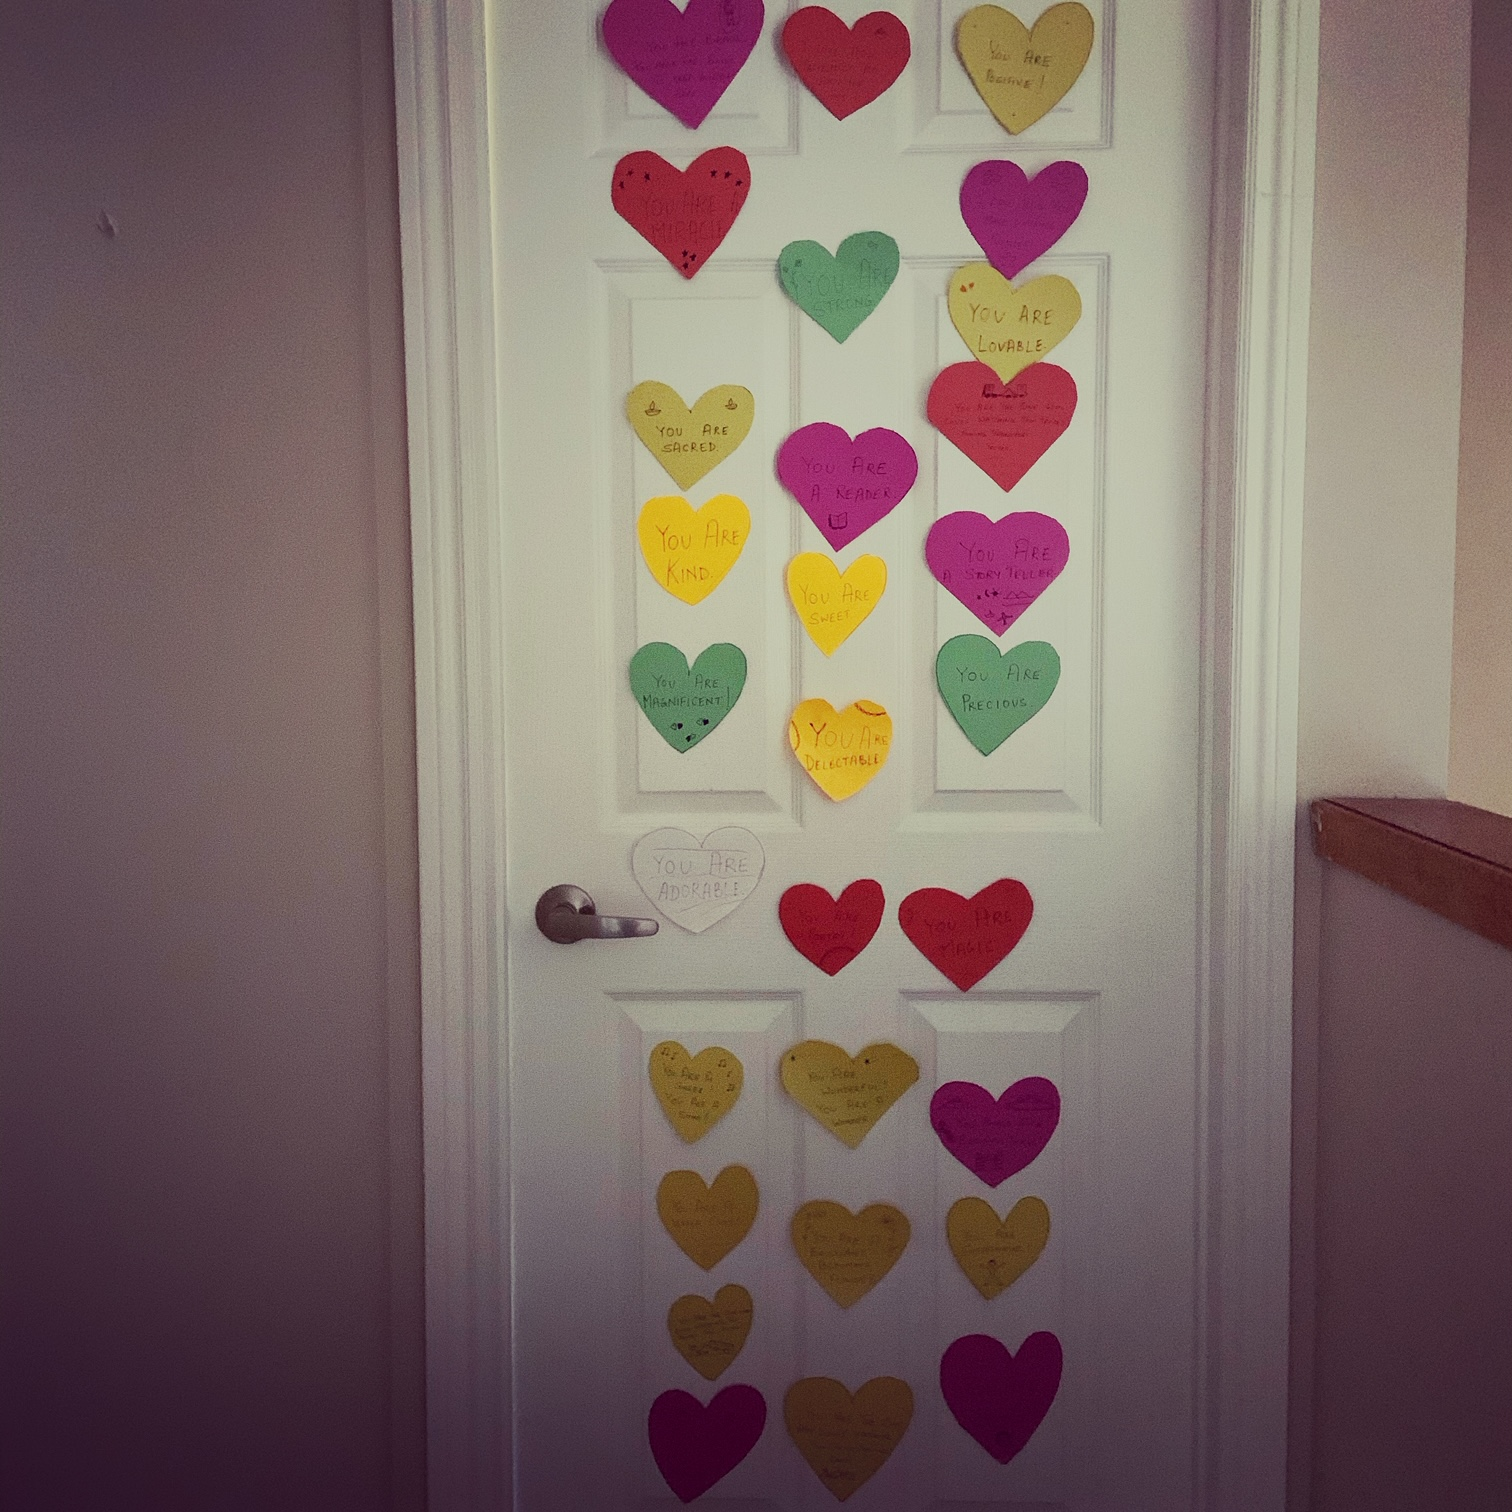 A Door of Hearts